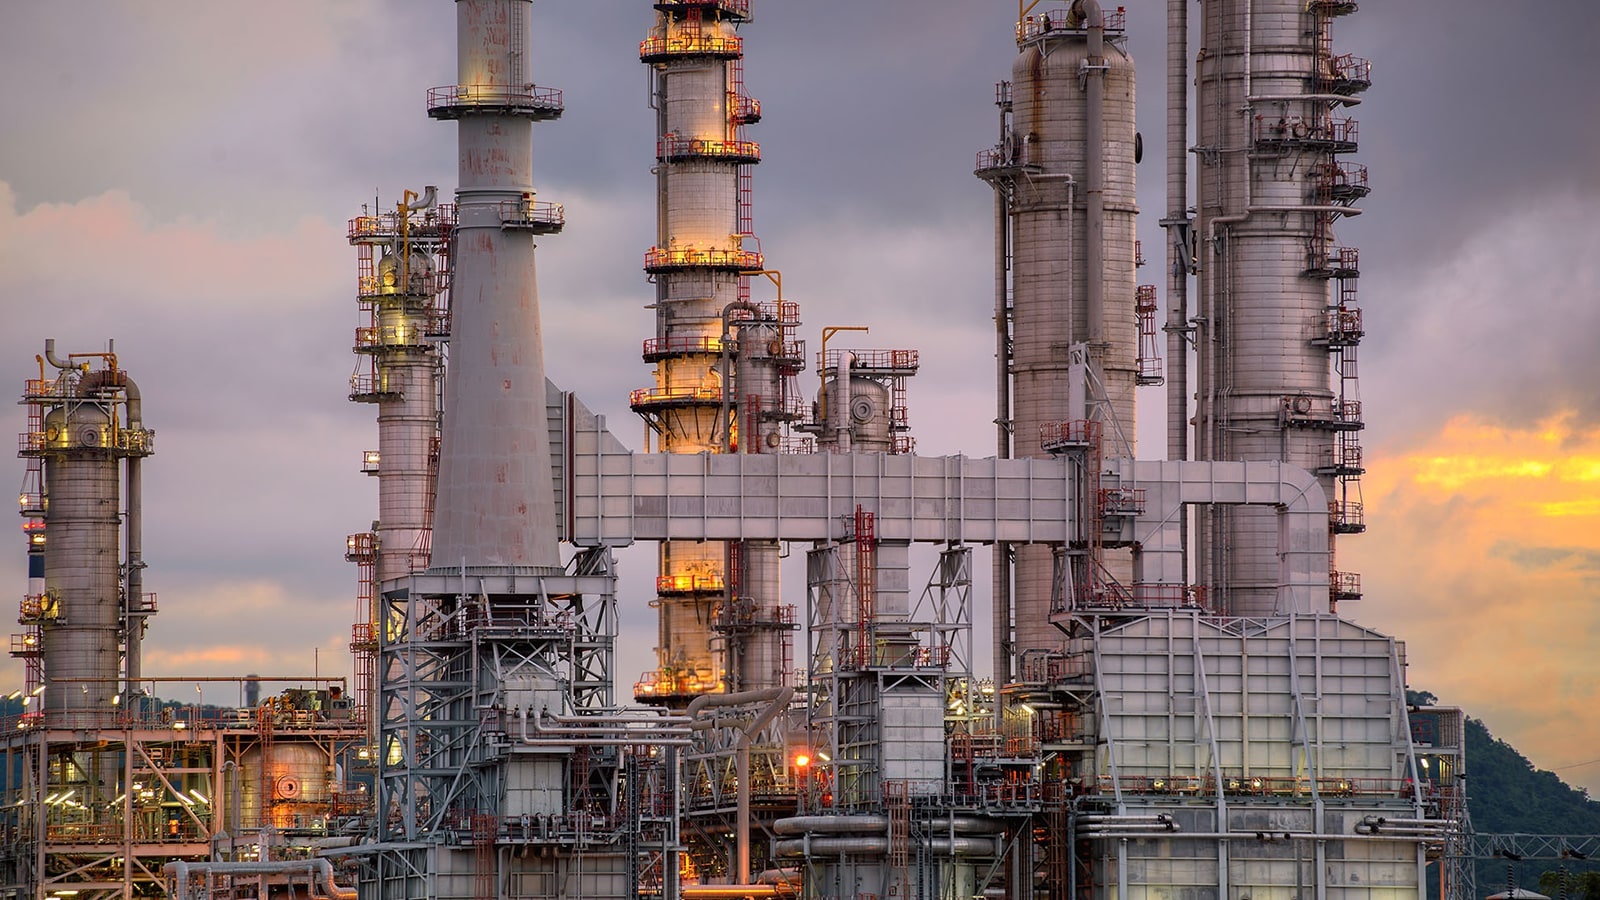 Oil and gas plant